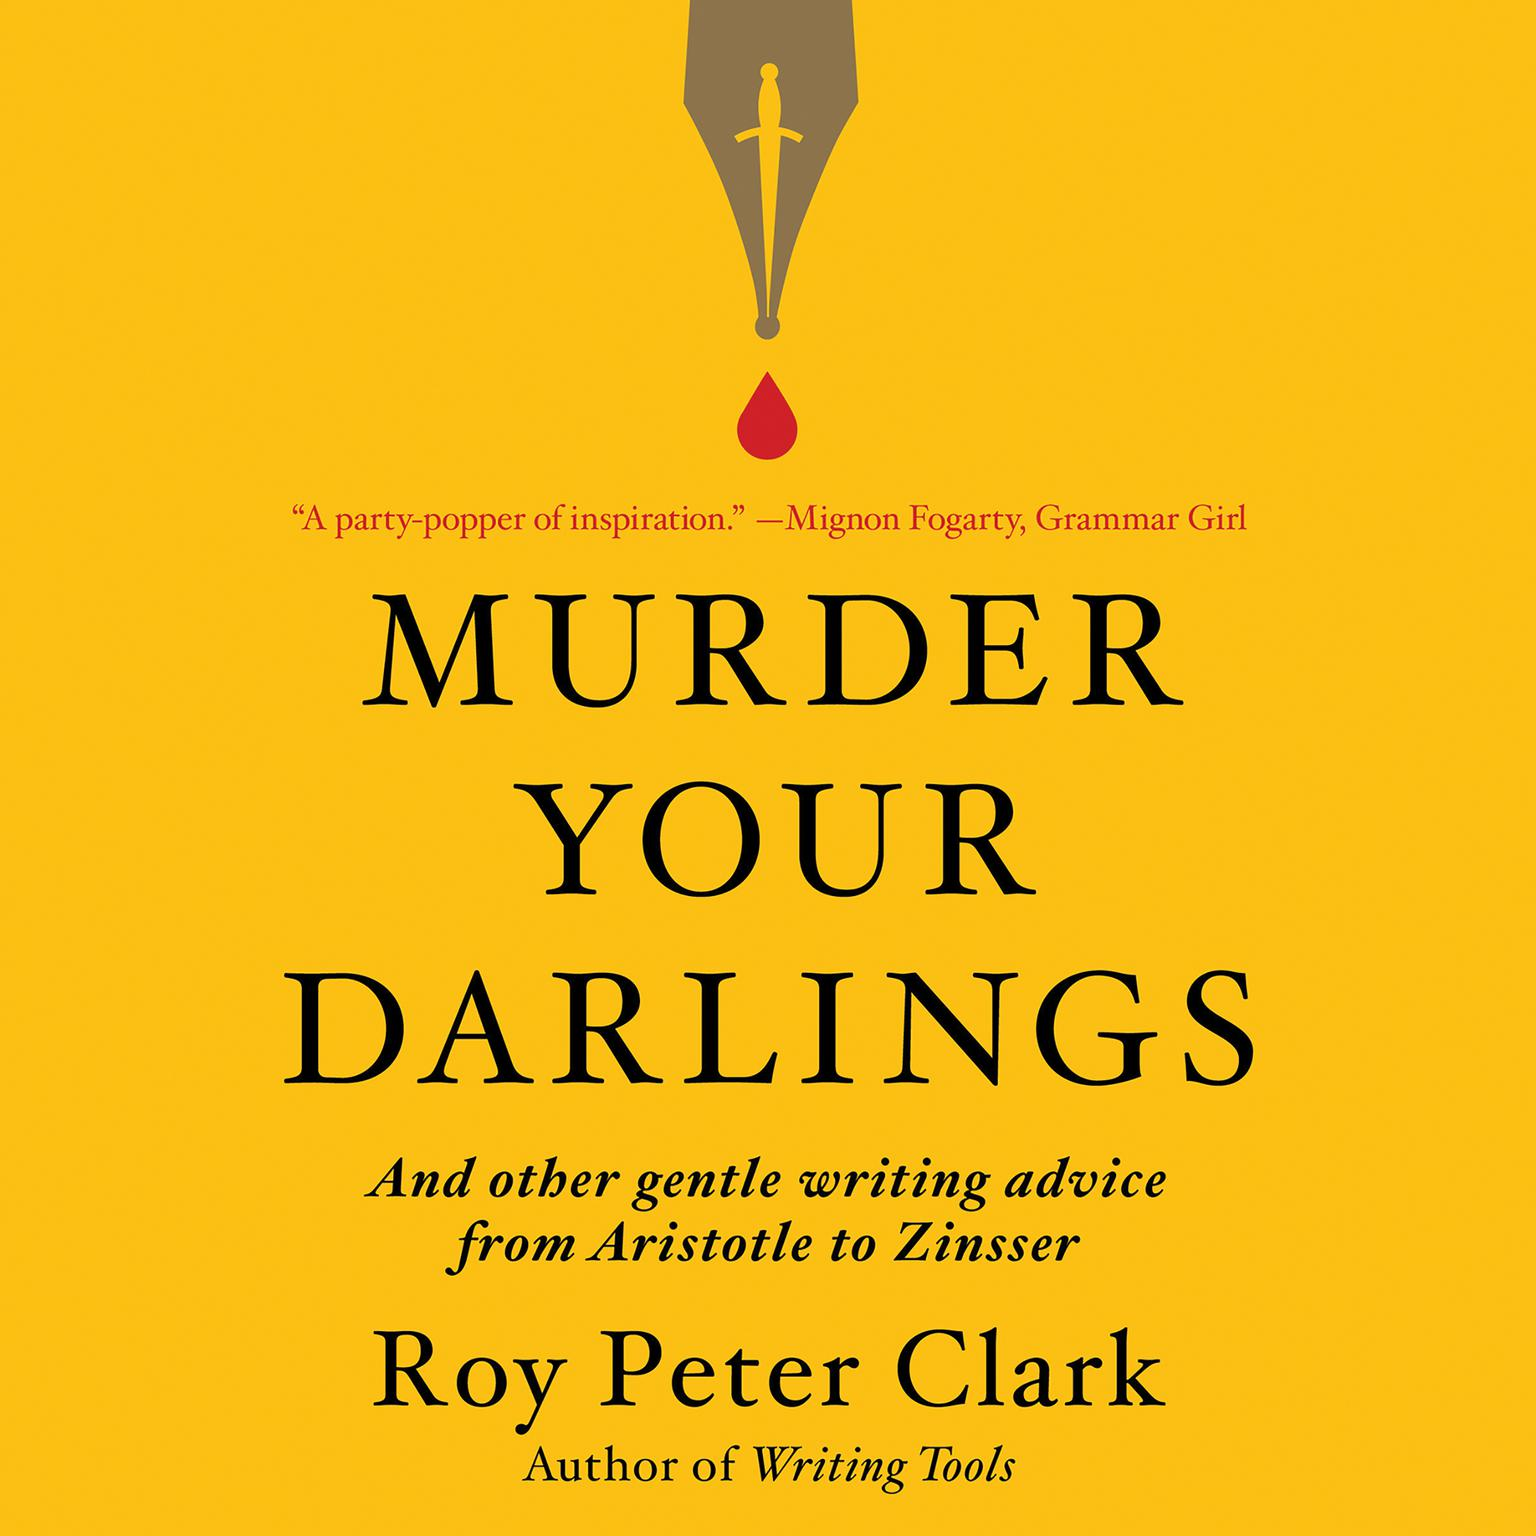 Printable Murder Your Darlings: And Other Gentle Writing Advice from Aristotle to Zinsser Audiobook Cover Art